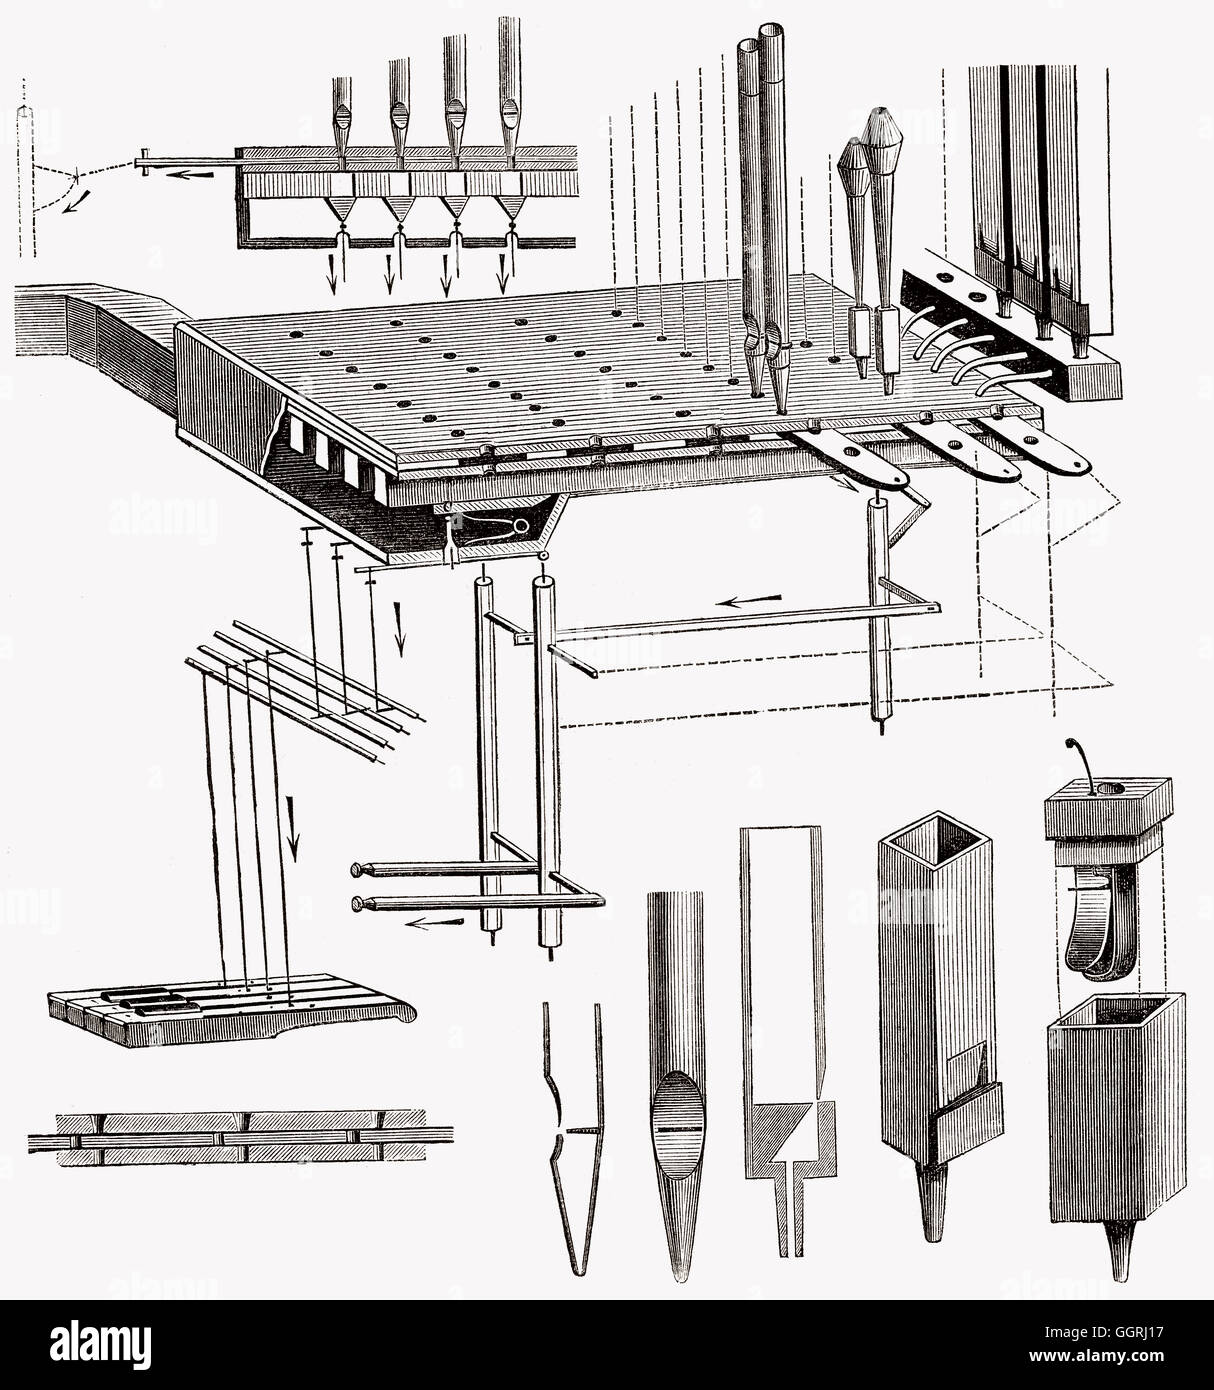 Schematic function of a pipe organ, 19th century Stock Photo ...